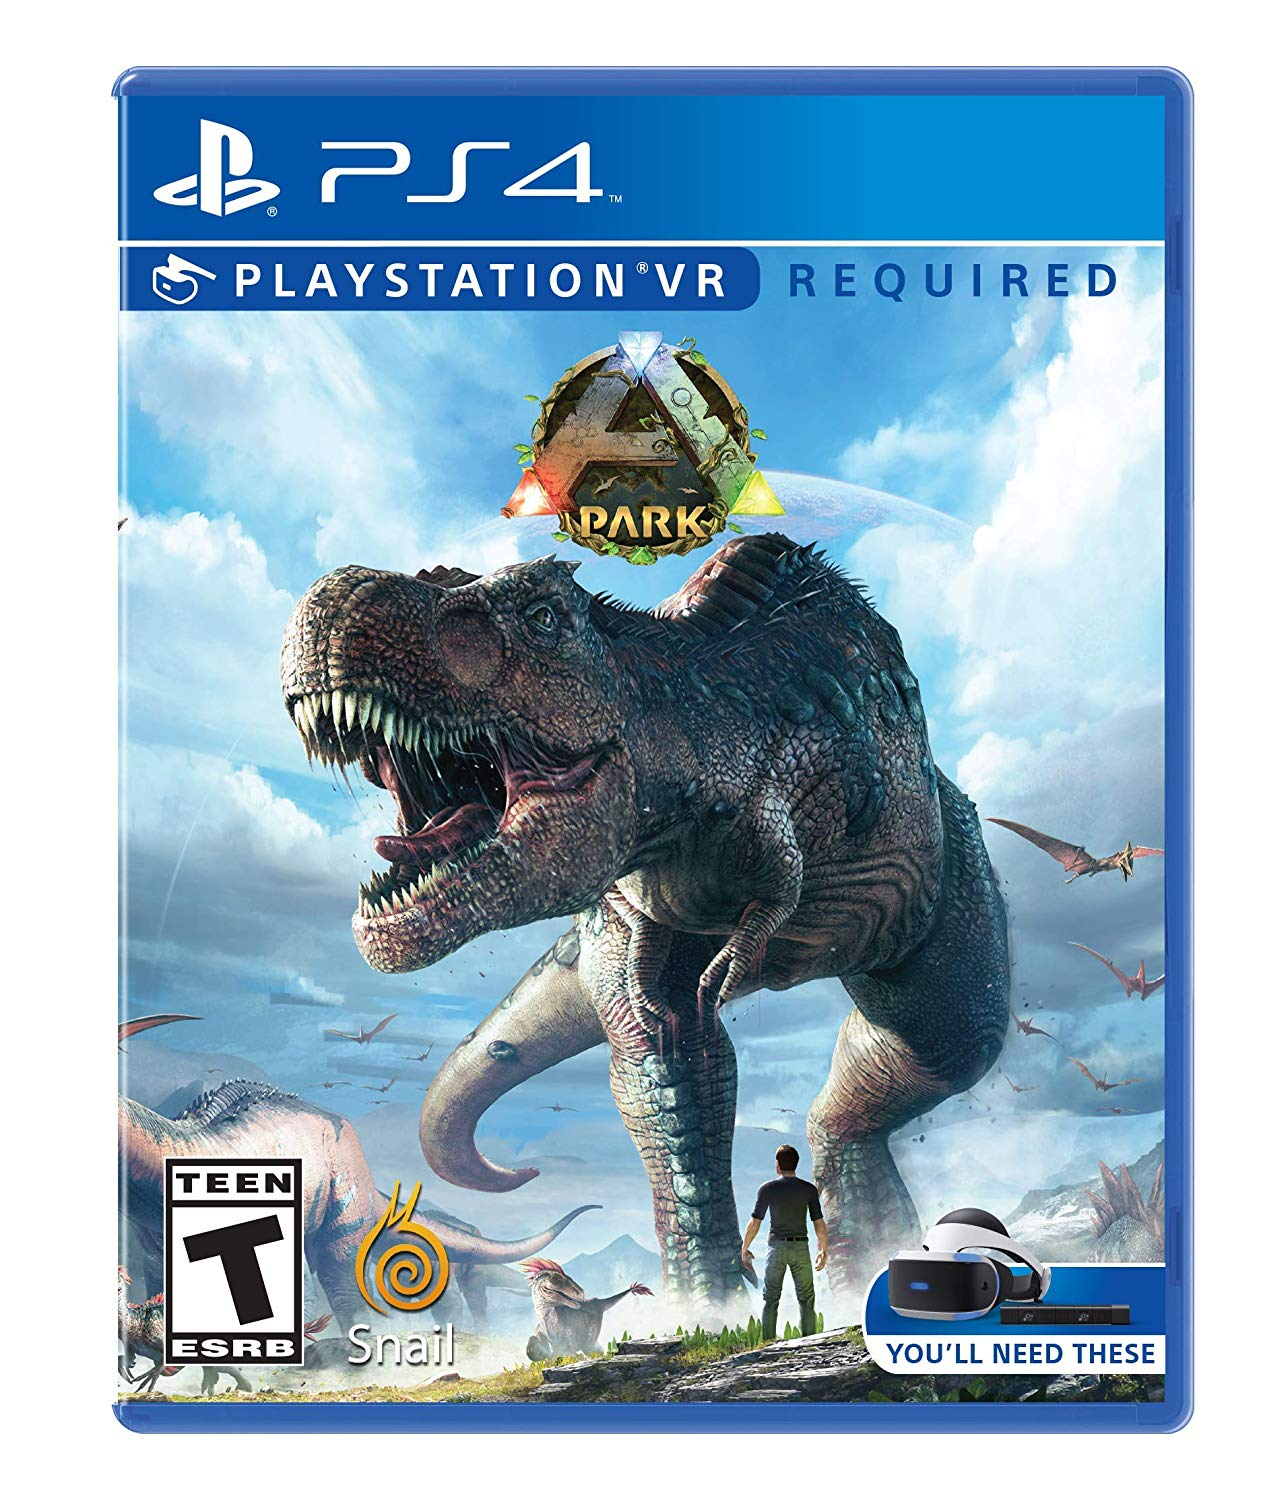 PS4 PSVR ARK Park VR